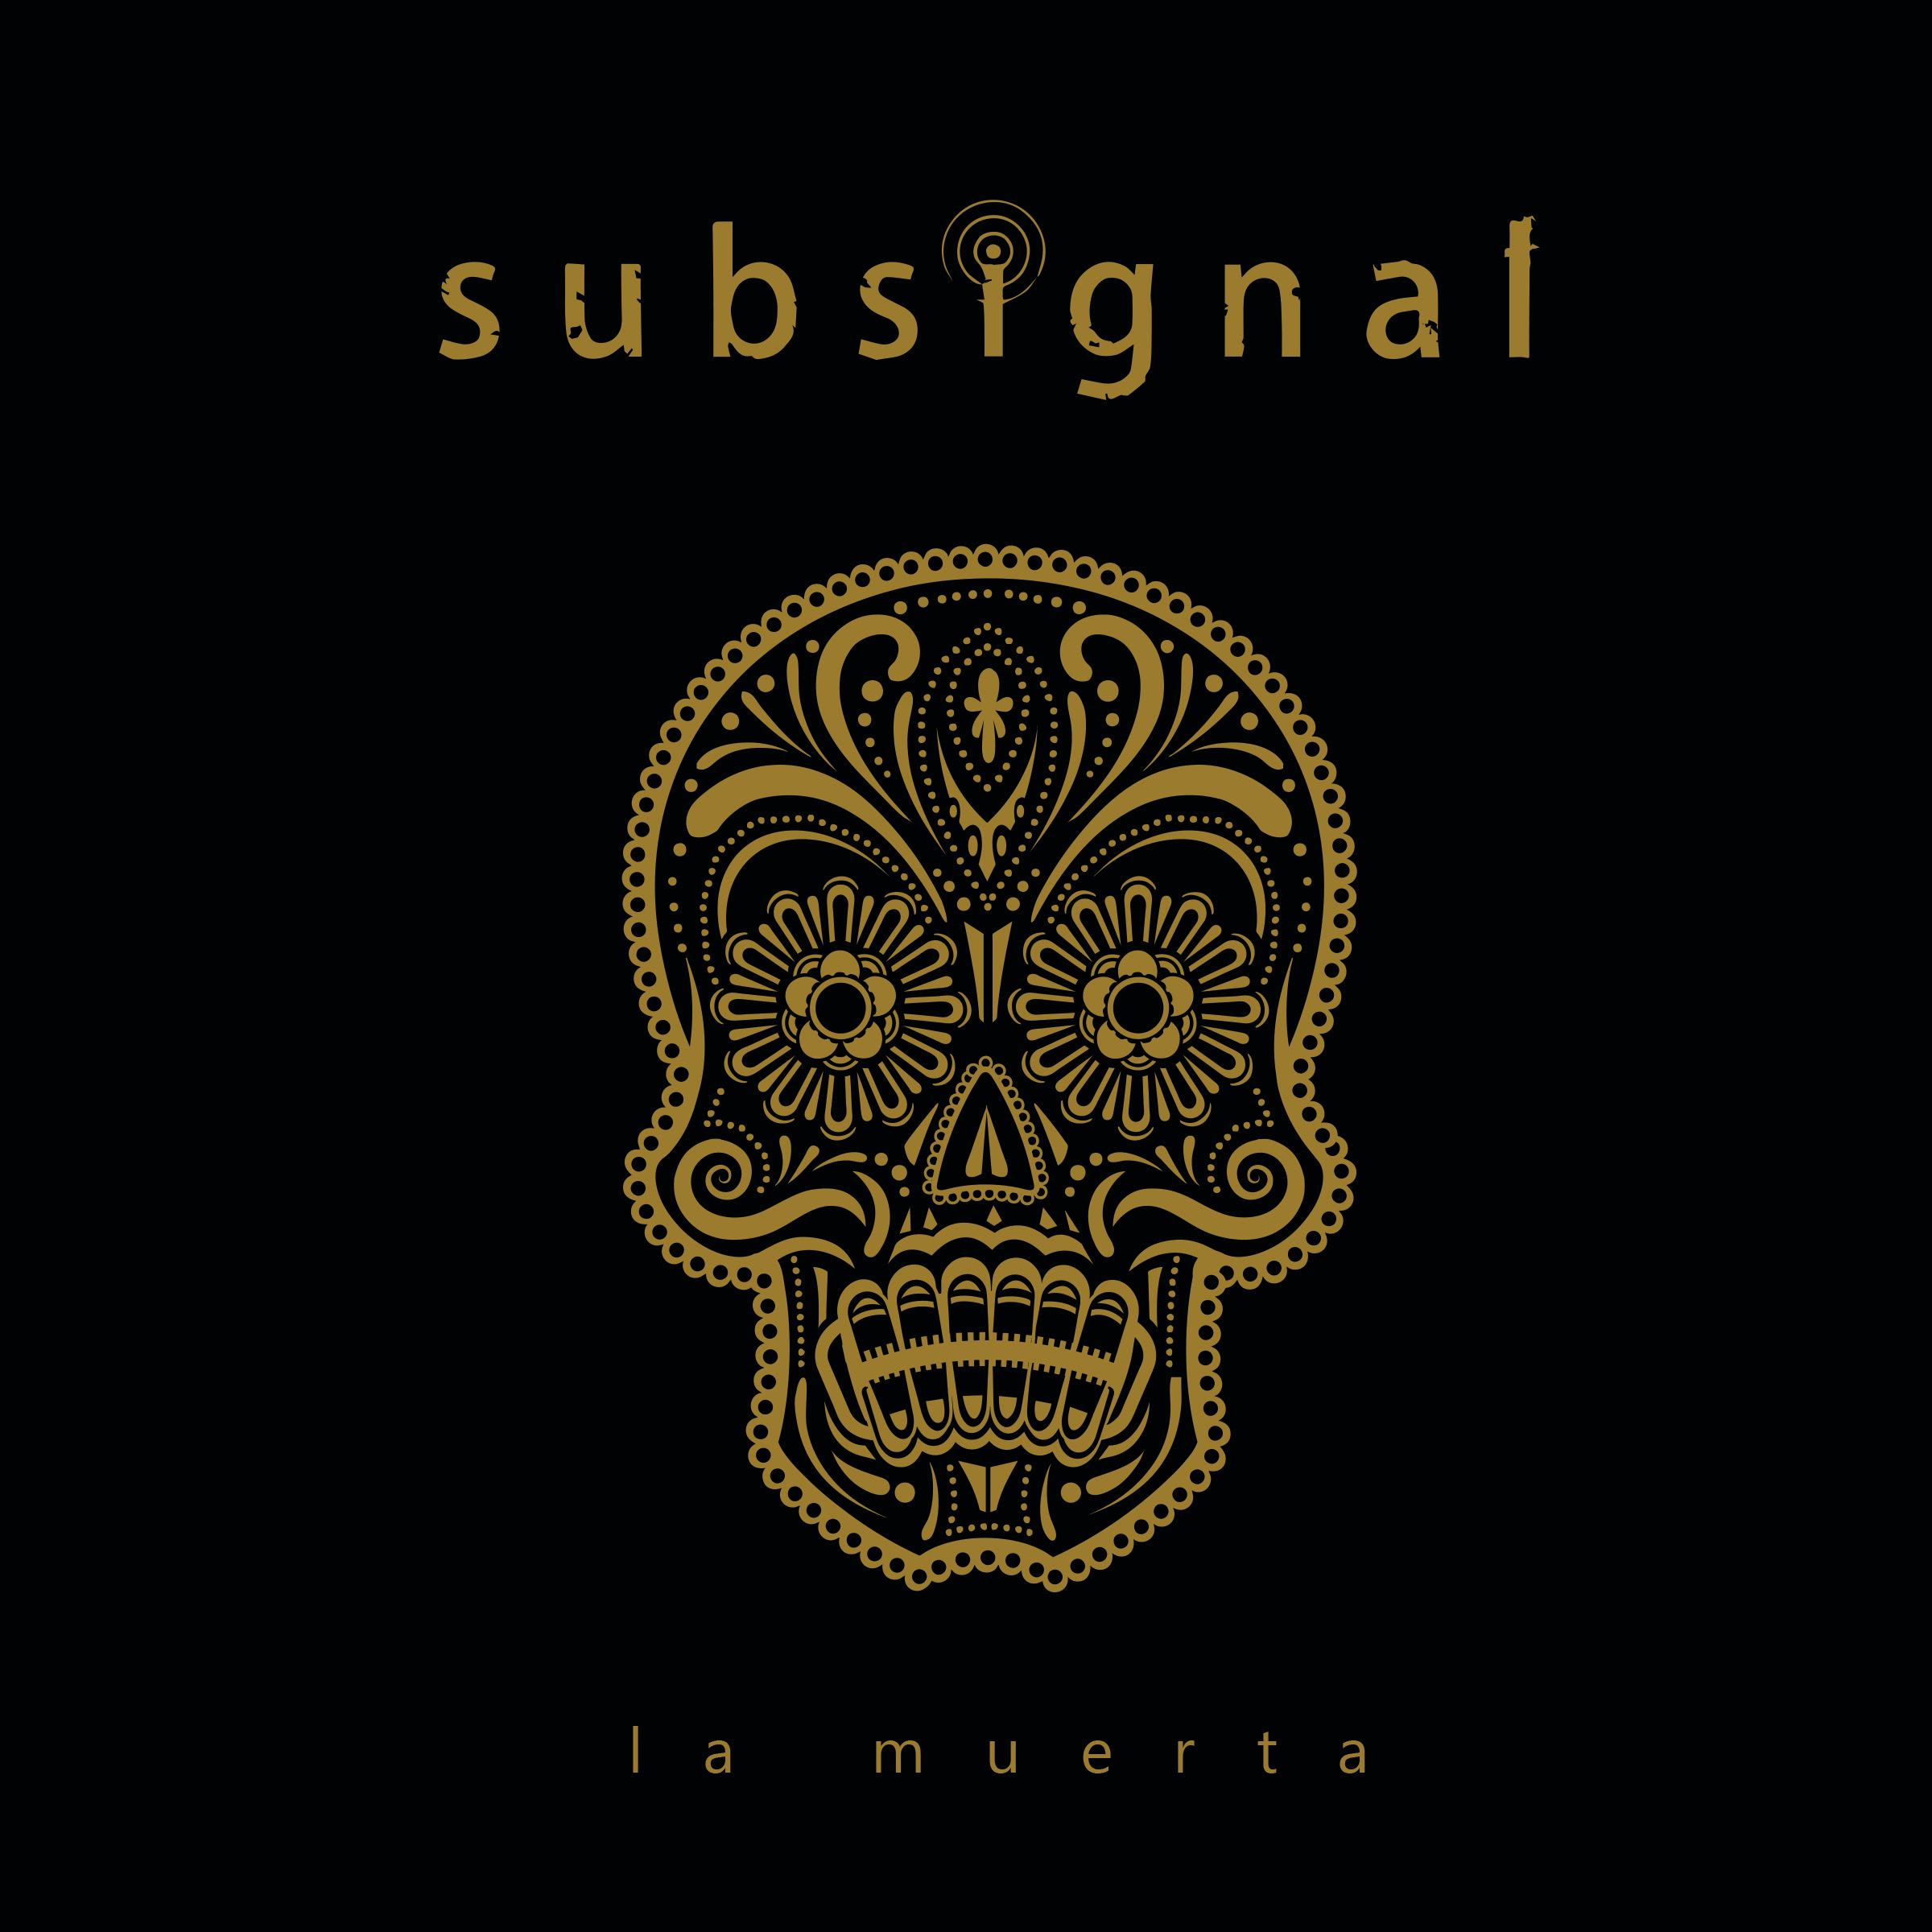 "It took  Subsignal  a good two years, but now they are finally back and ready to release their new album  ""La Muerta.""  On it, as to be expected with the former Sieges Even duo Markus Steffen and Arno Menses, the German band sends the listener on a proper voyage of discovery that is as complex as it is eventful. Subsignal have consciously designed the path to  ""La Muerta""  a tad more accessible than was the case with the predecessor...  Watch a trailer for  ""La Muerta""   HERE .  It is the fundamental rule in  Subsignal : the band always resets the focus and overhauls the pressure points from album to album. That is why in the run-up to  ""La Muerta""  the German outfit did not only sign a new record deal with Gentle Art of Music, but the five-piece also made a decision in favor of a modified approach in terms of the project's artistic priorities. While on earlier releases the band still lit up the literal torch to lead the audience's way through the tricky pathways of the delicately tangled progressive rock-undergrowth, this time, despite several hints of assistance here and there,  Subsignal  indeed put their trust in the power of the songwriting as well as the intuition of the listener. The band's signature energy is no less essential than ever before, but its unique presence has transformed and taken on a significantly more subtle role. The same goes for the technical sophistication of the musical implementation: it is still a driving force but it no longer lunges right into the listener's face. Much more it clandestinely sneaks up from the - only seemingly! - diffuse atmosphere to ultimately spread with all the force that fans and critics alike have praised.  The current lineup, consisting of Markus Steffen (guitar), Arno Menses (vocals), Ralf Schwager (bass), Markus Maichel (keyboards) and Dirk Brand (drums), has remained unchanged for quite some time and thus become a precisely harmonized team of perfection. It is obvious: the micro-adjustments of musical and mechanical aspects no longer required tending to. Much more ""La Muerta""  showcases a well-oiled fellowship that passionately puts every last bit of energy into the macro-process of painting the big picture. A new album might always start out as a journey into the unknown, but there is not a shadow of a doubt: right from the beginning the minds behind  Subsignal  had a very clear idea of where  ""La Muerta""  would take them and how they would get there.  Production duties were put into the hands of  RPWL's  Yogi Lang and Kalle Wallner. The duo has demonstrated great intuition and provided the songs with enough air to breathe and unfold - without restraining the fascinating density that adds another dimension to that multilayered voyage of discovery that is ""La Muerta.""  The paths have been marked, the supplies are packed. This is where the adventure starts - enjoy the ride!   Track Listing:  01) 271 Days 02) La Muerta 03) The Bells Of Lyonesse 04) Every Able Hand 05) Teardrops Will Dry In Source Of Origin 06) The Approaches  07) Even Though The Stars Don't Shine  08) The Passage  09) When All The Trains Are Sleeping  10) As Birds On Pinions Free  11) Some Kind Of Drowning"